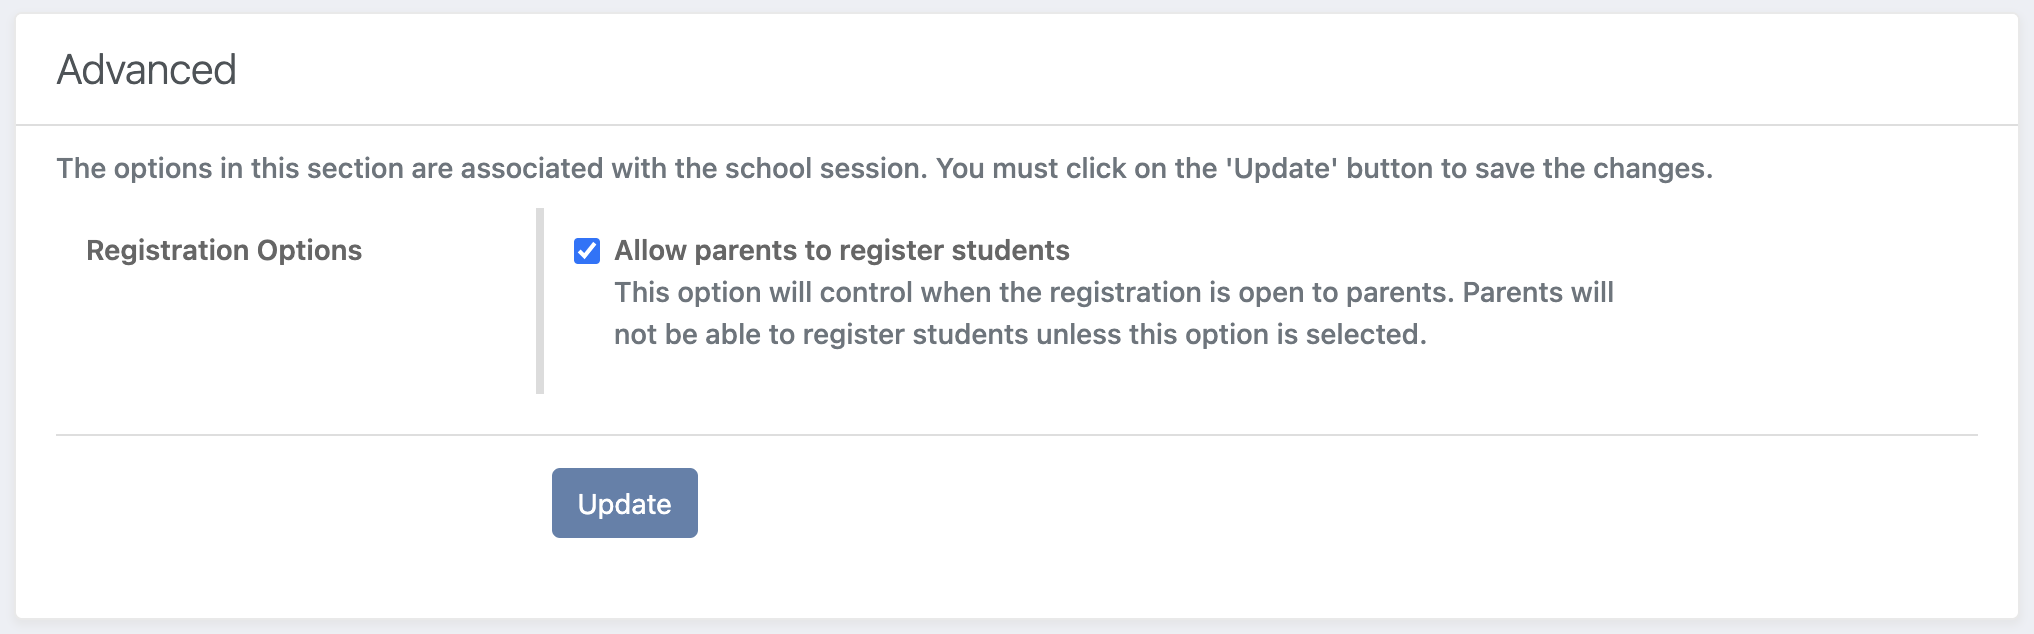 Enable Registration